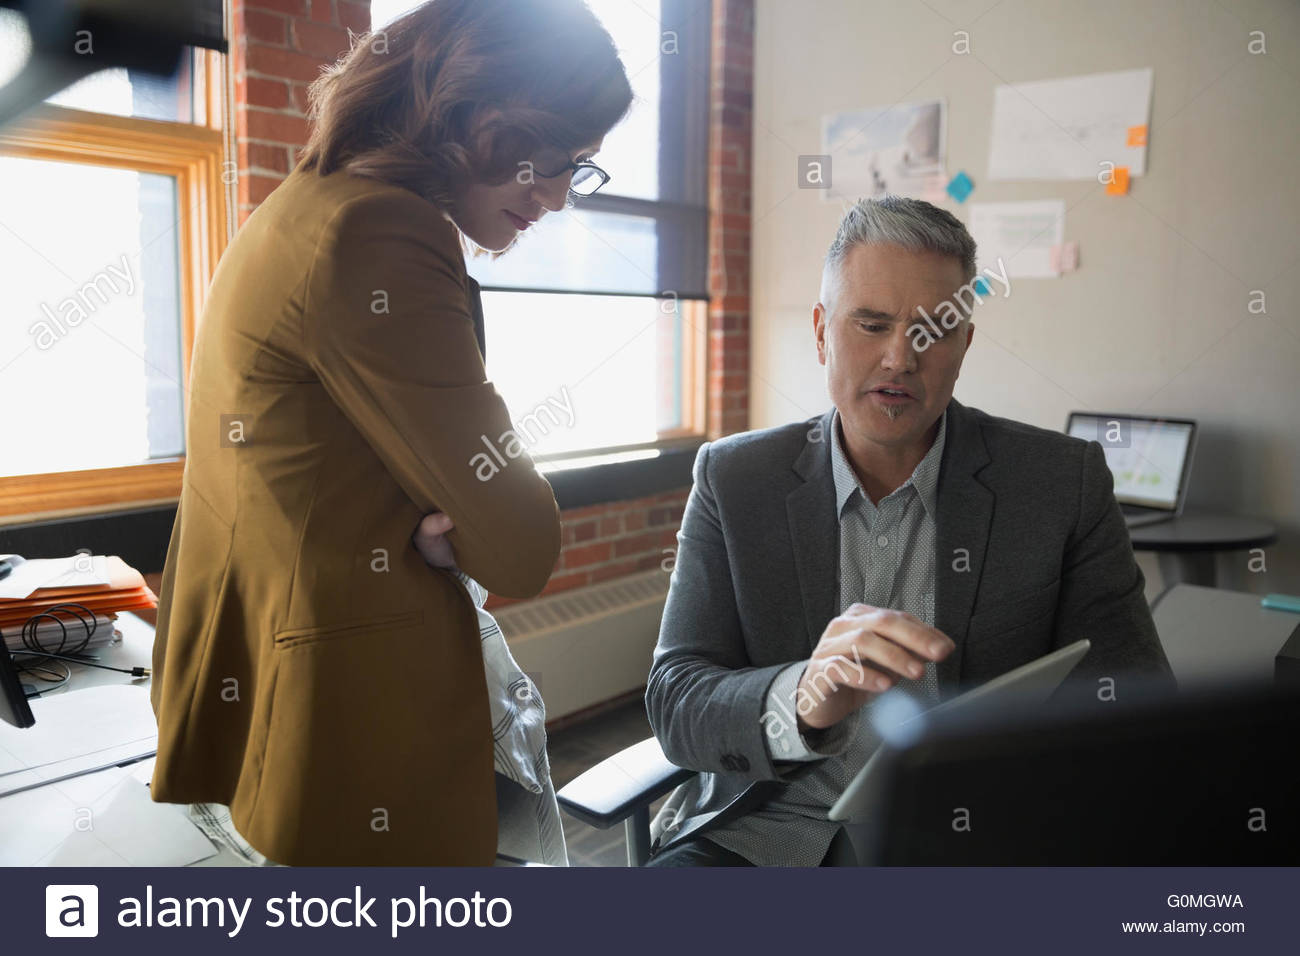 Businessman and businesswoman using digital tablet office desk - Stock Image